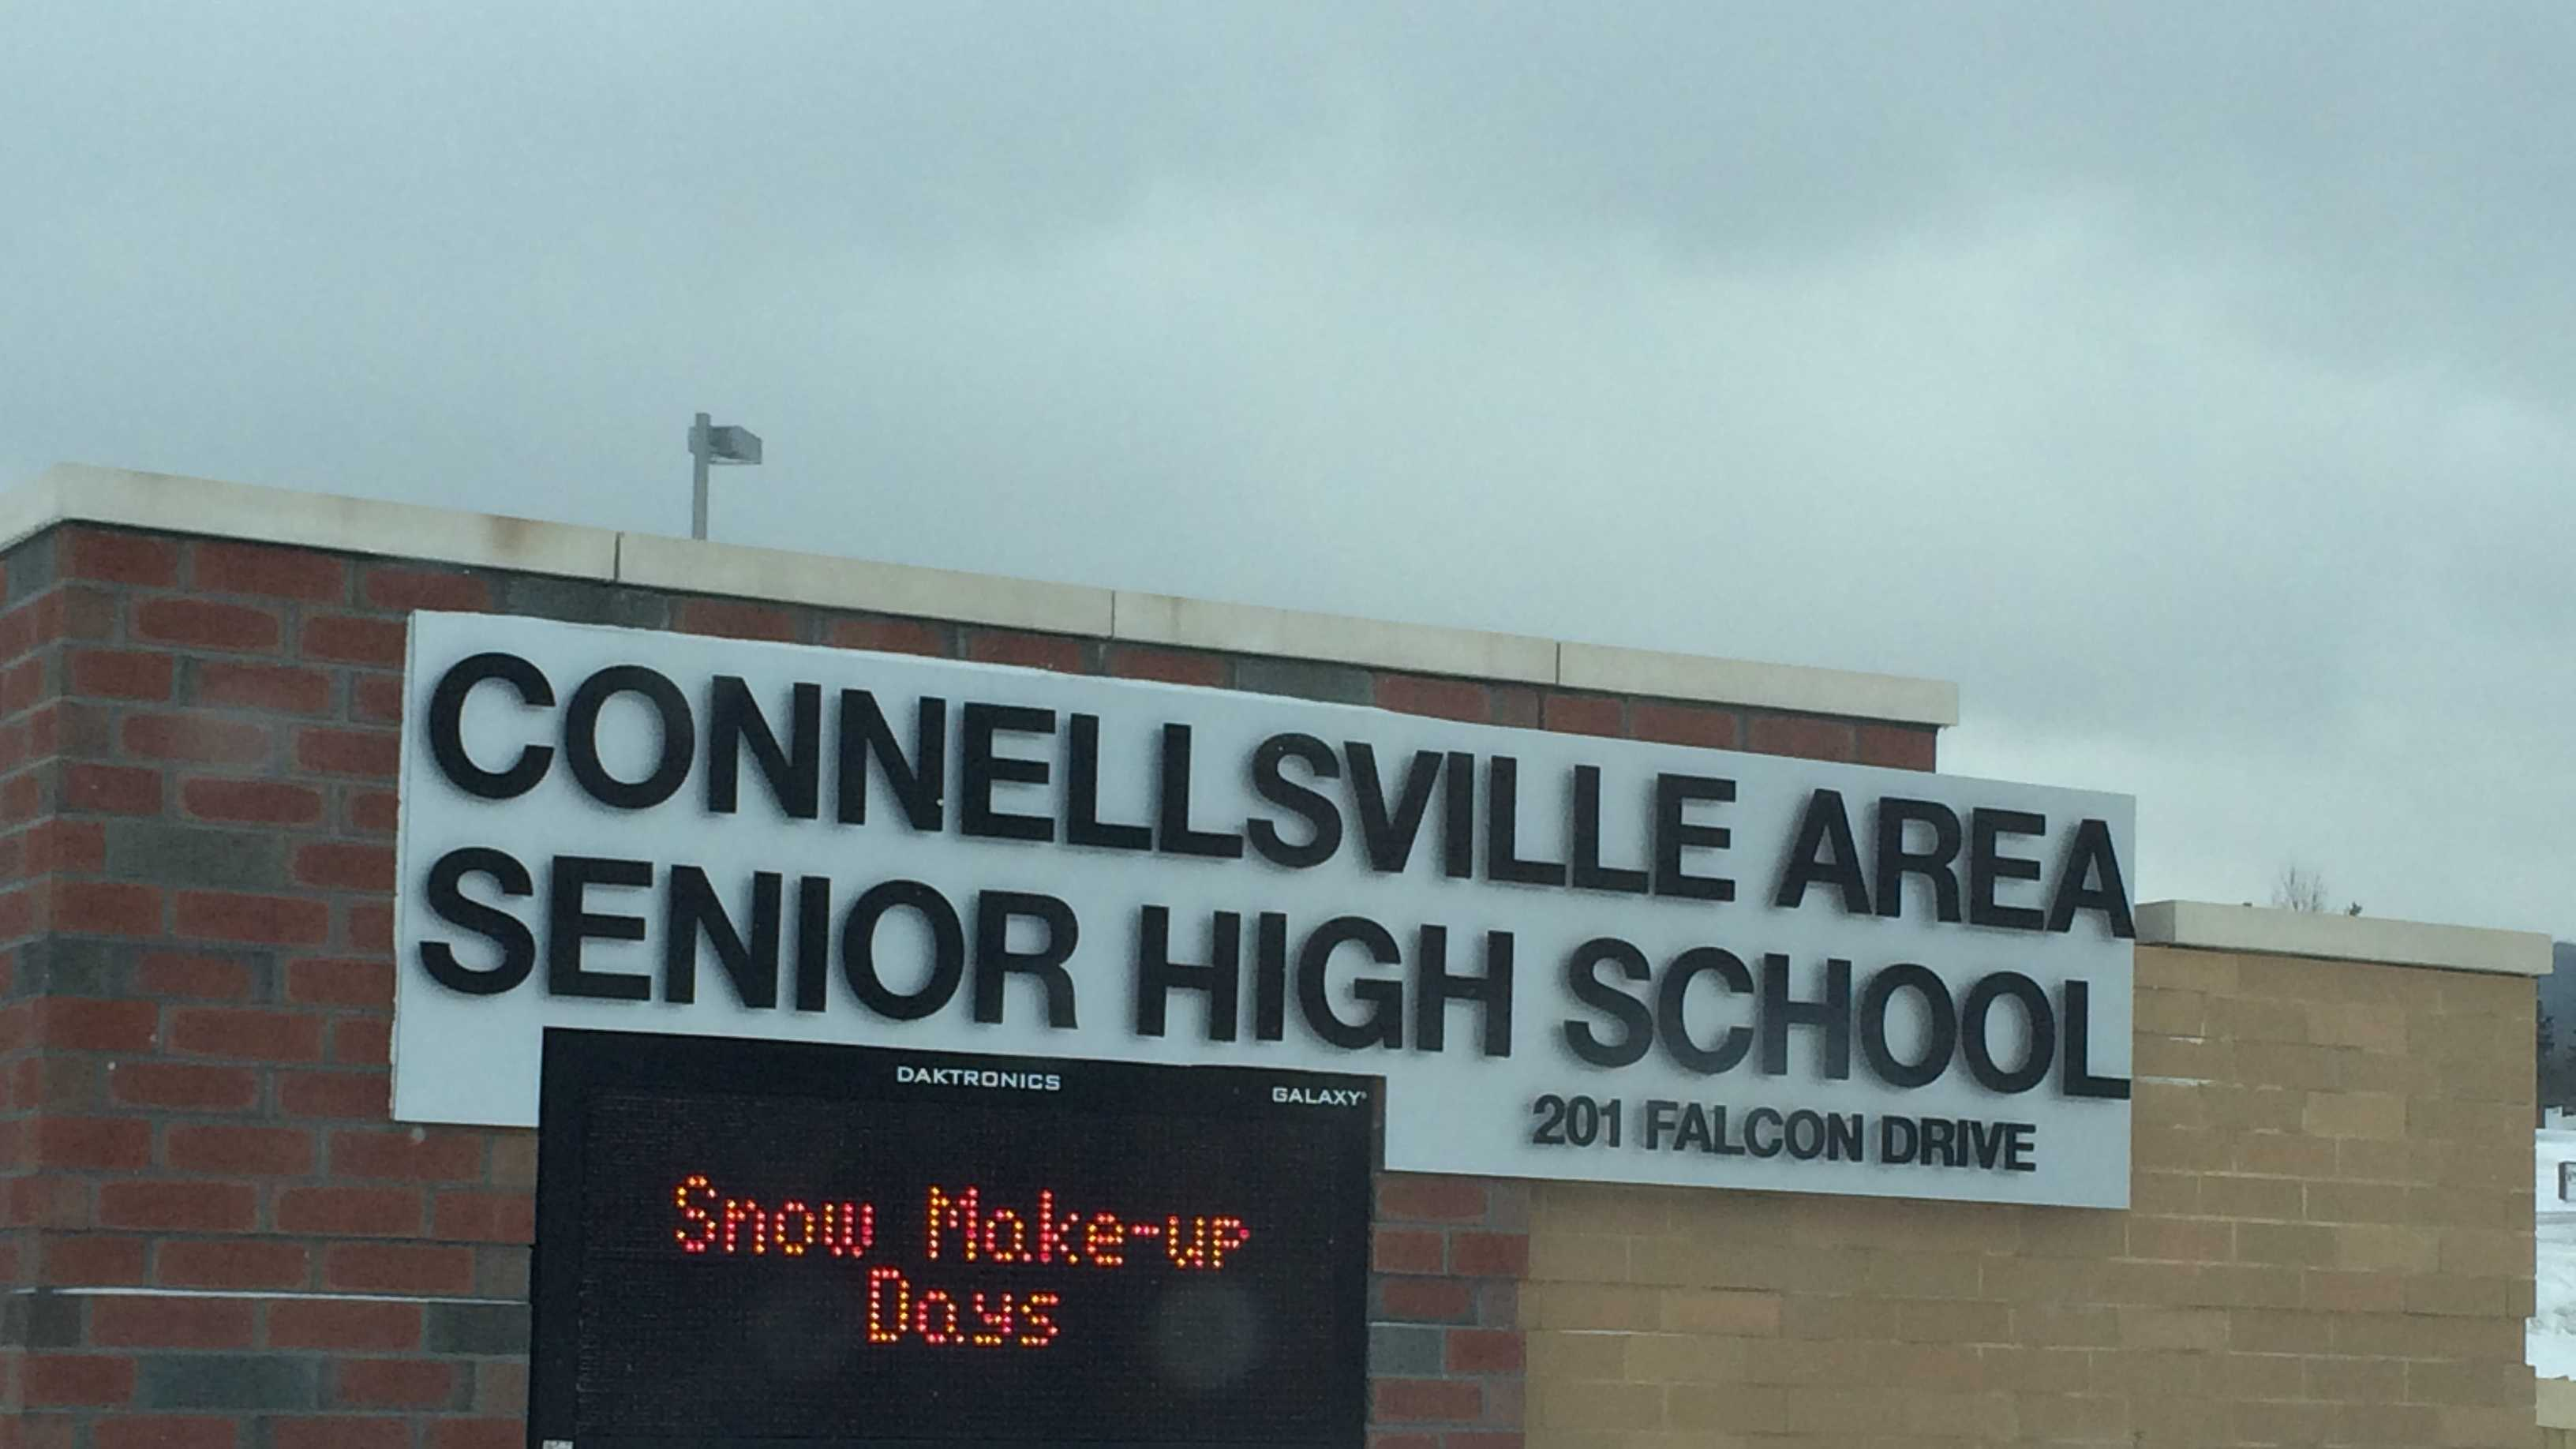 Connellsville Area Senior High School